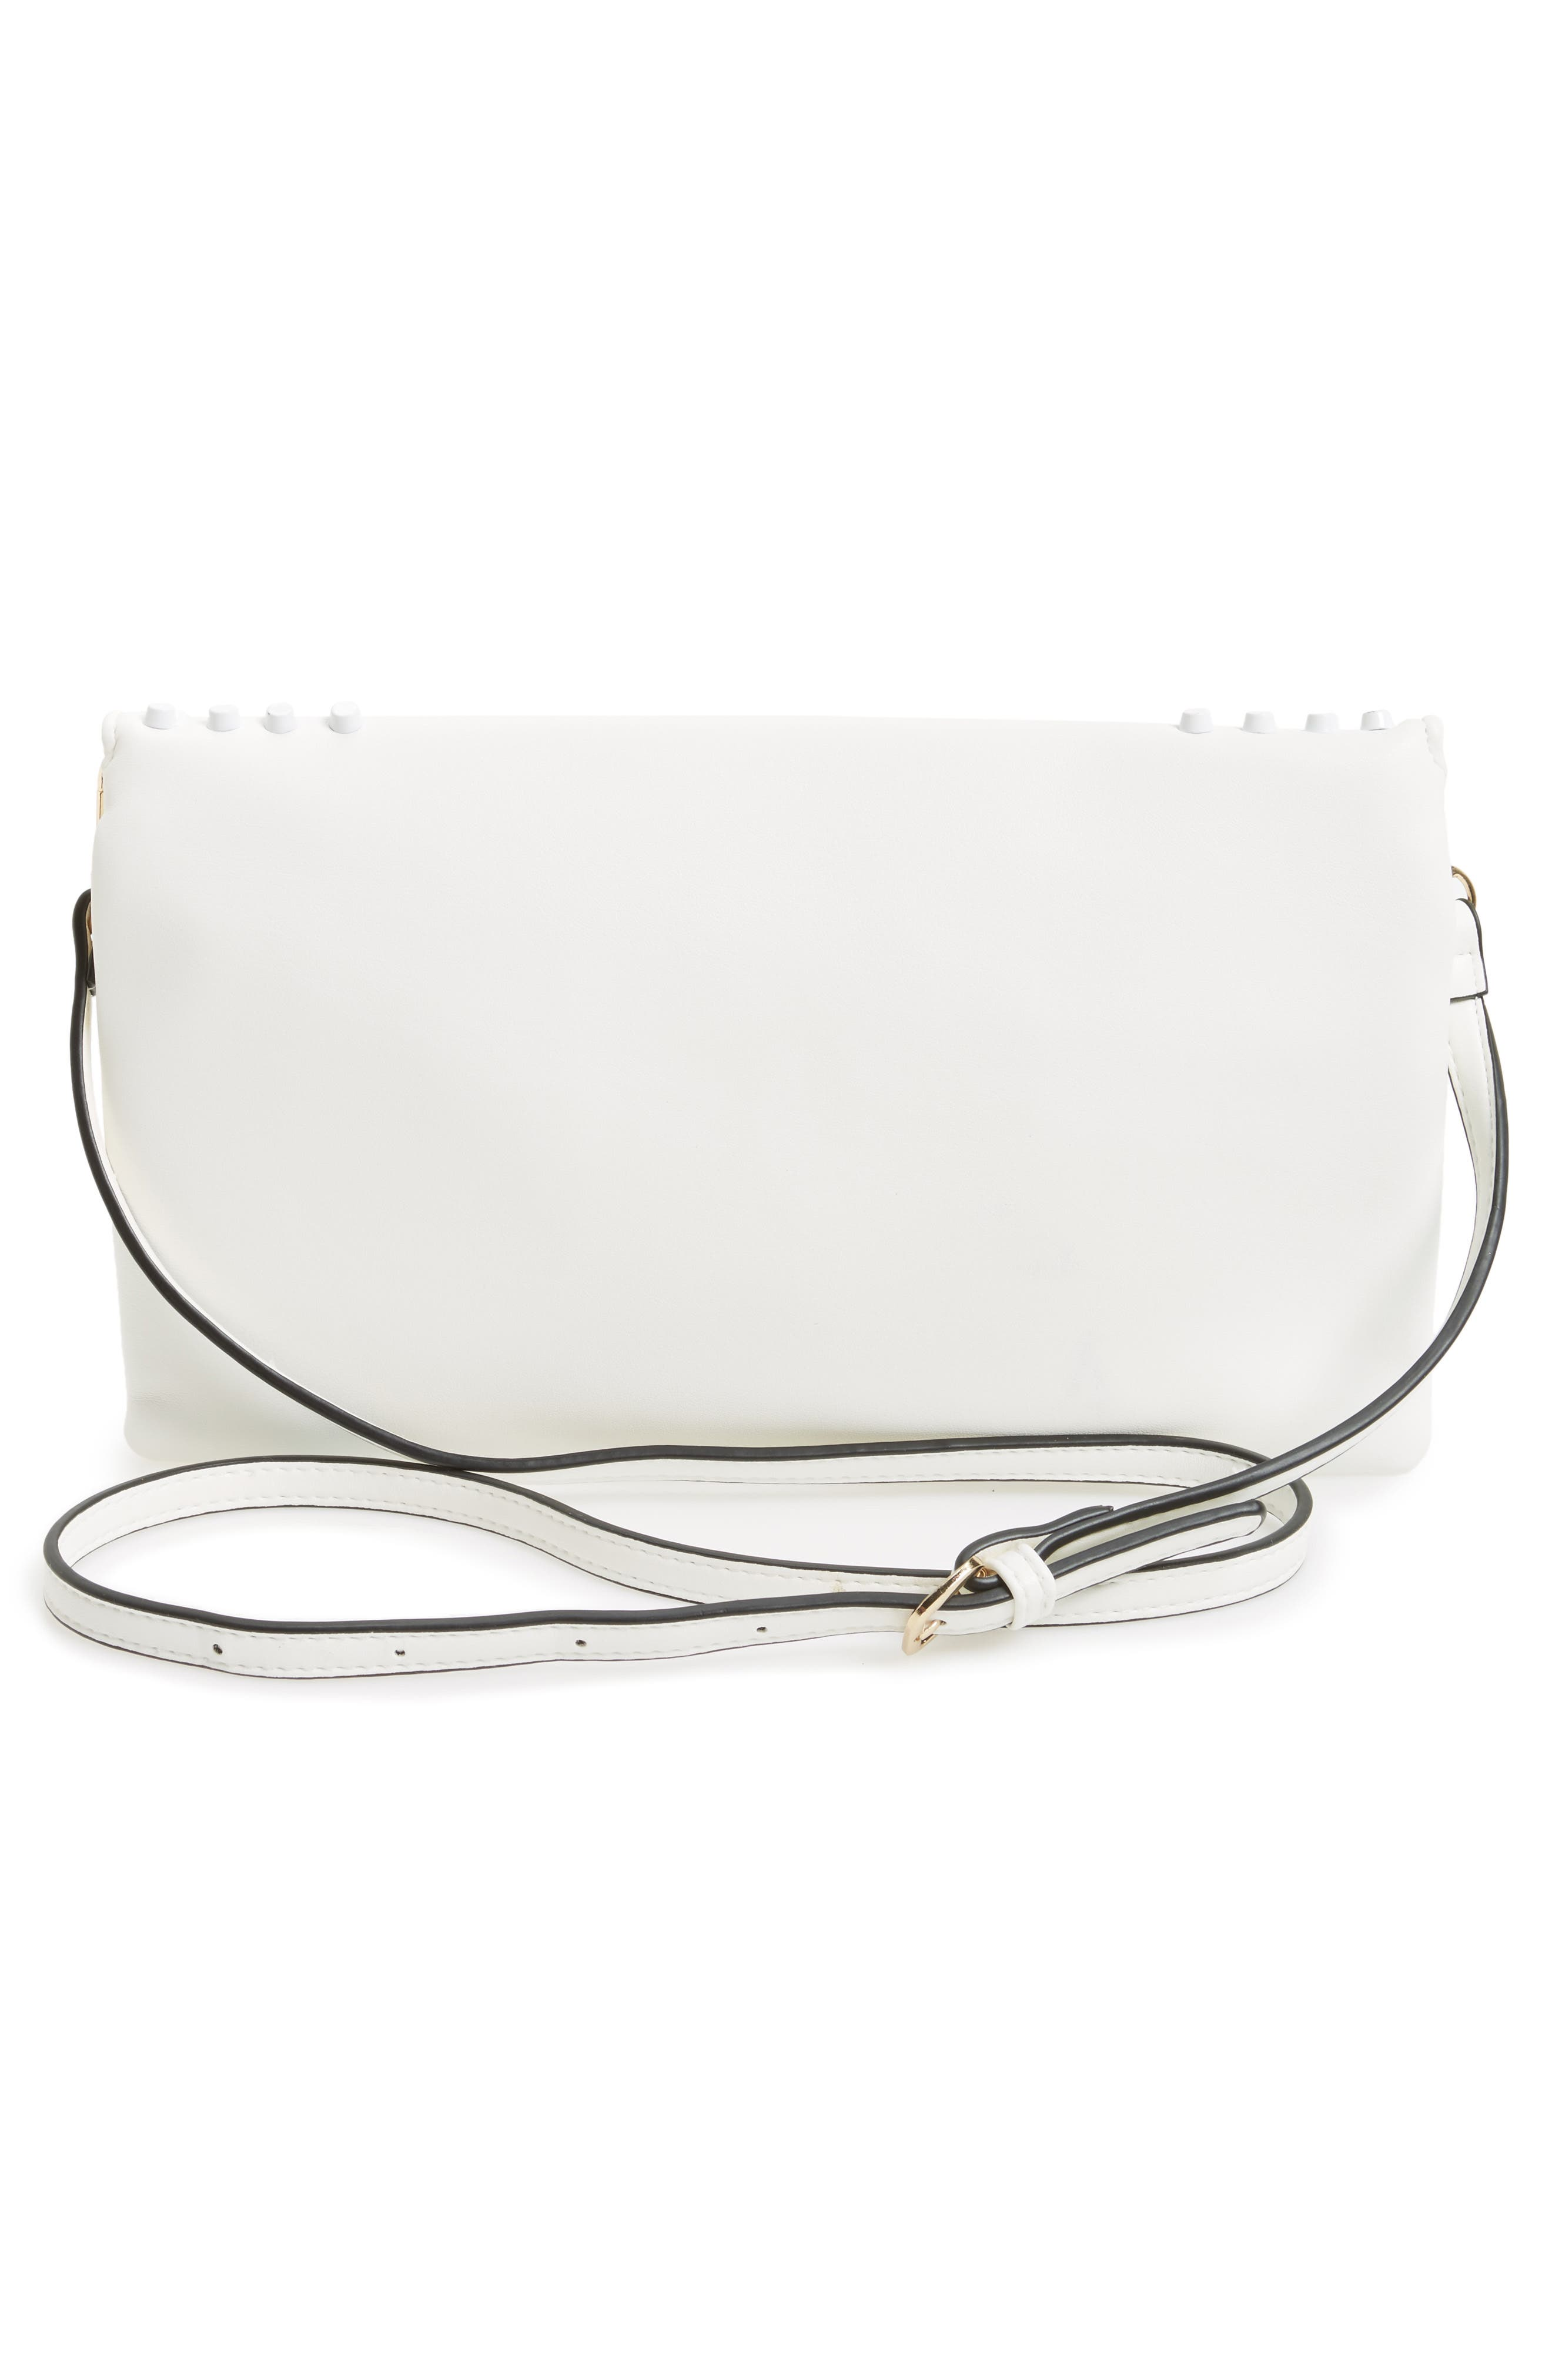 Alternate Image 2  - Sondra Roberts Studded Faux Leather Envelope Clutch